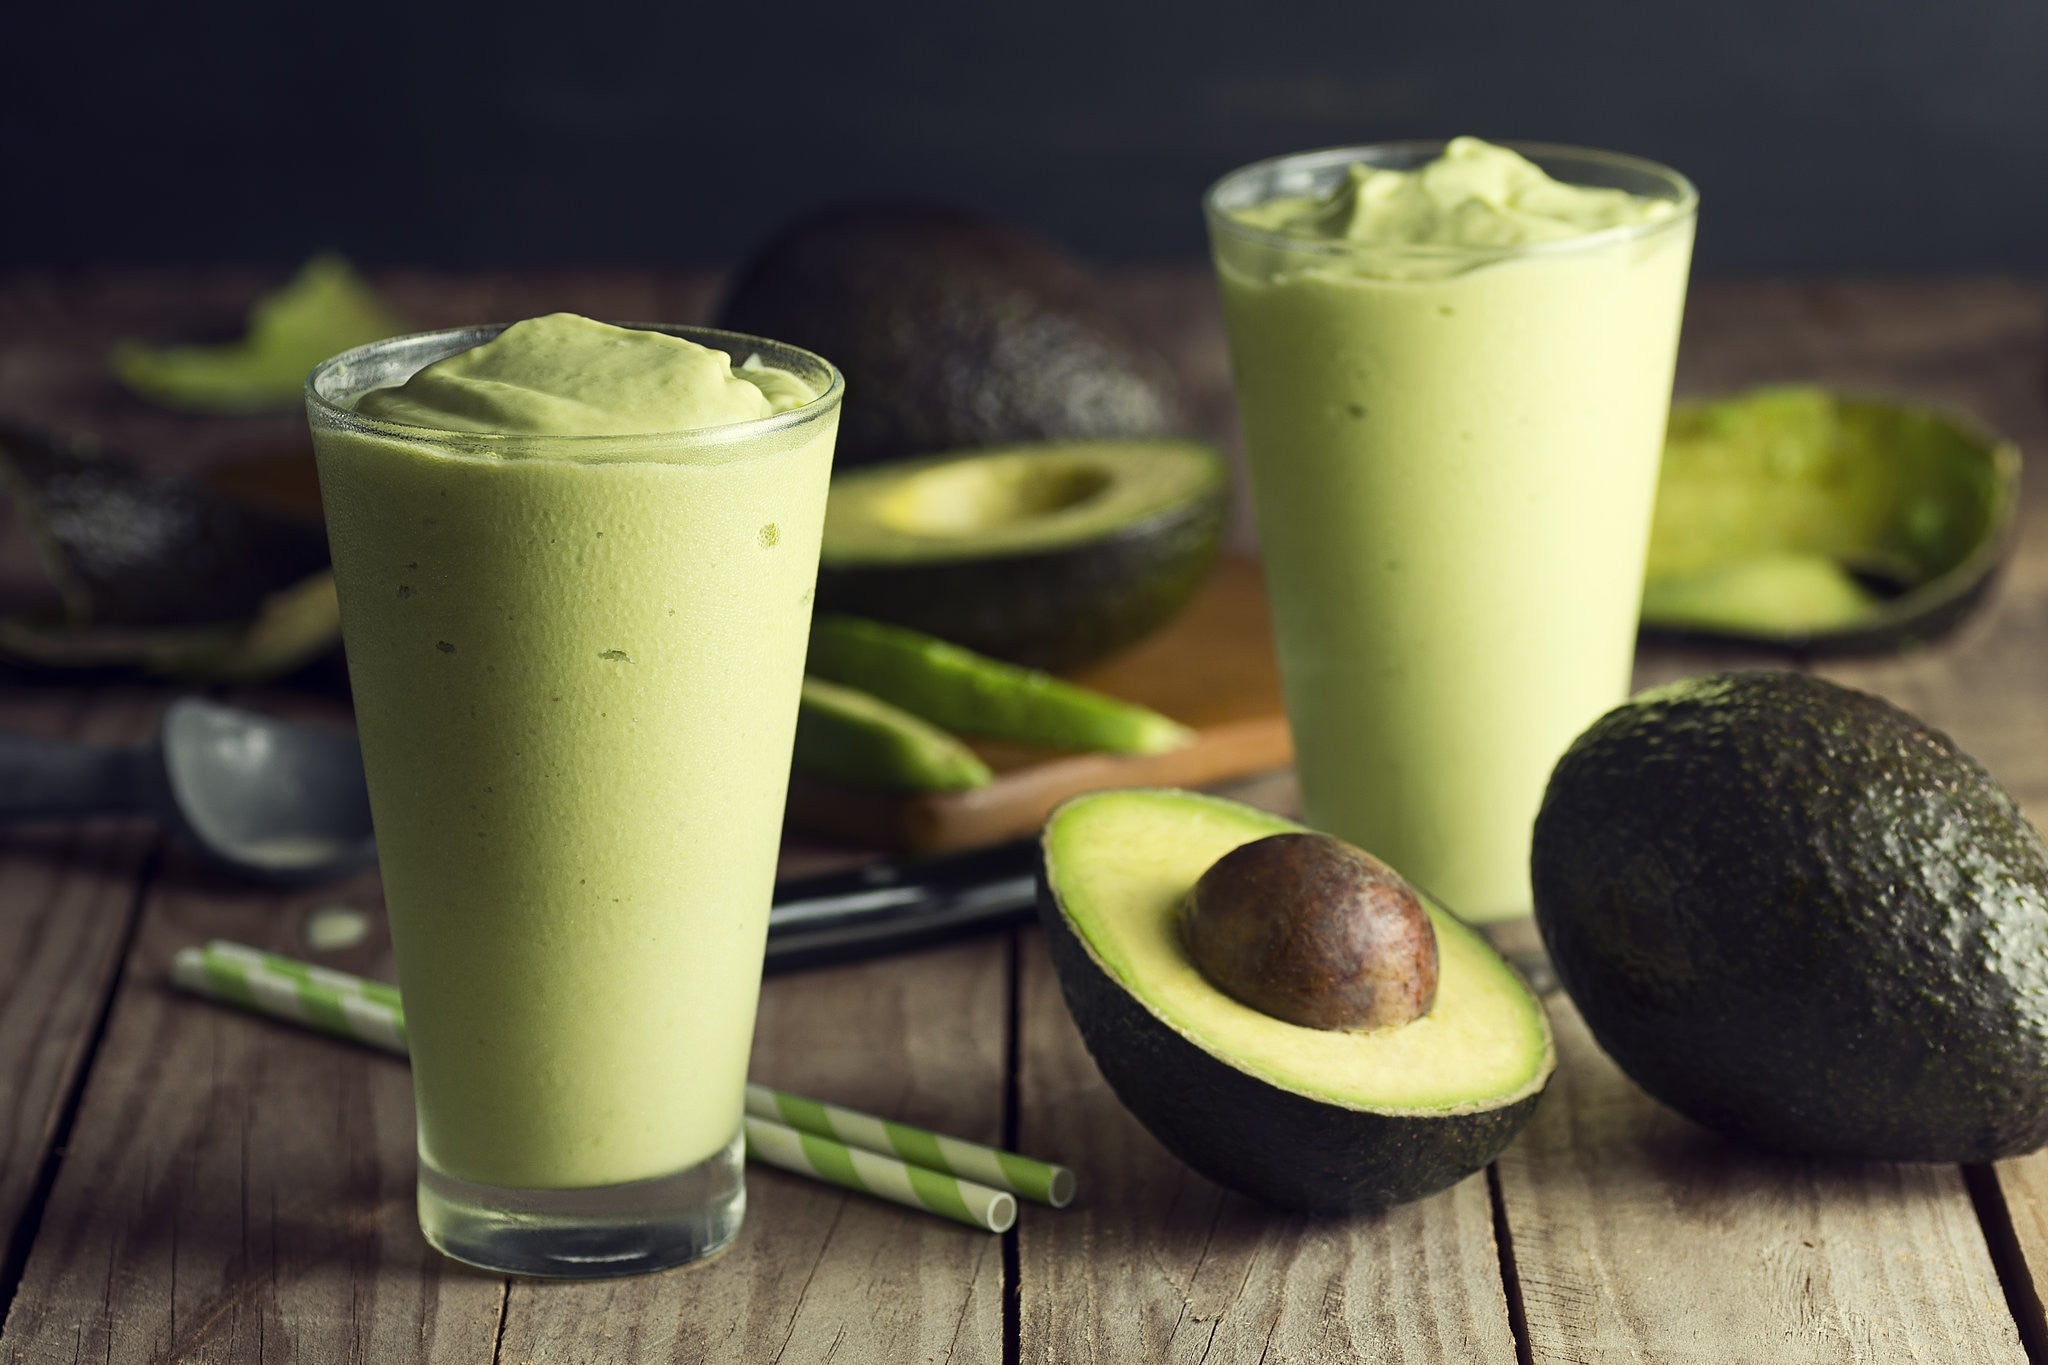 AVOCADO NUTRITION AND A DELICIOUS HANGOVER CURE